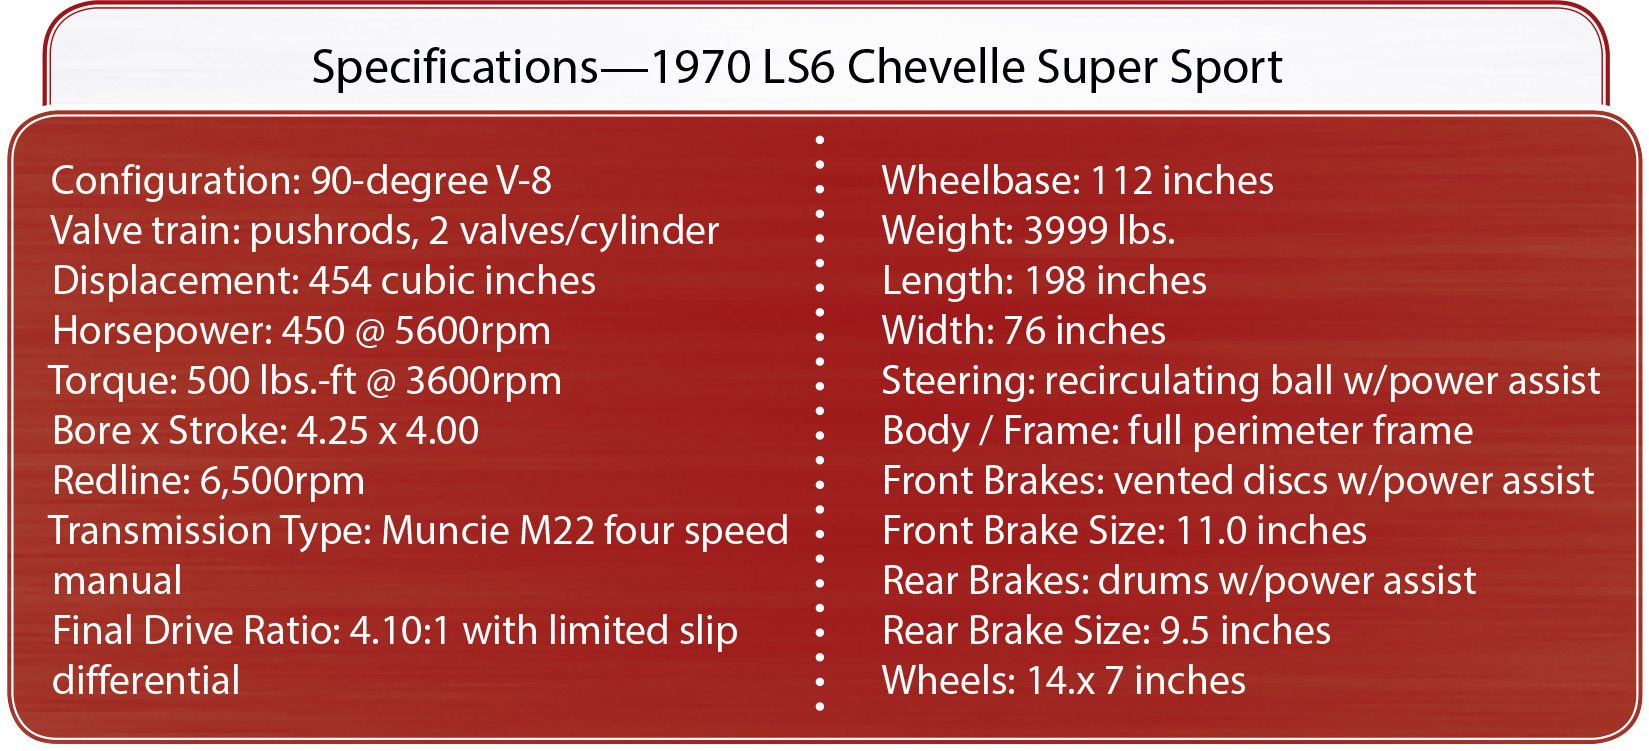 The Ultimate Muscle Car 1970 Ls6 Chevelle Was Americas King Chevy 454 Engine Belt Diagram Specs